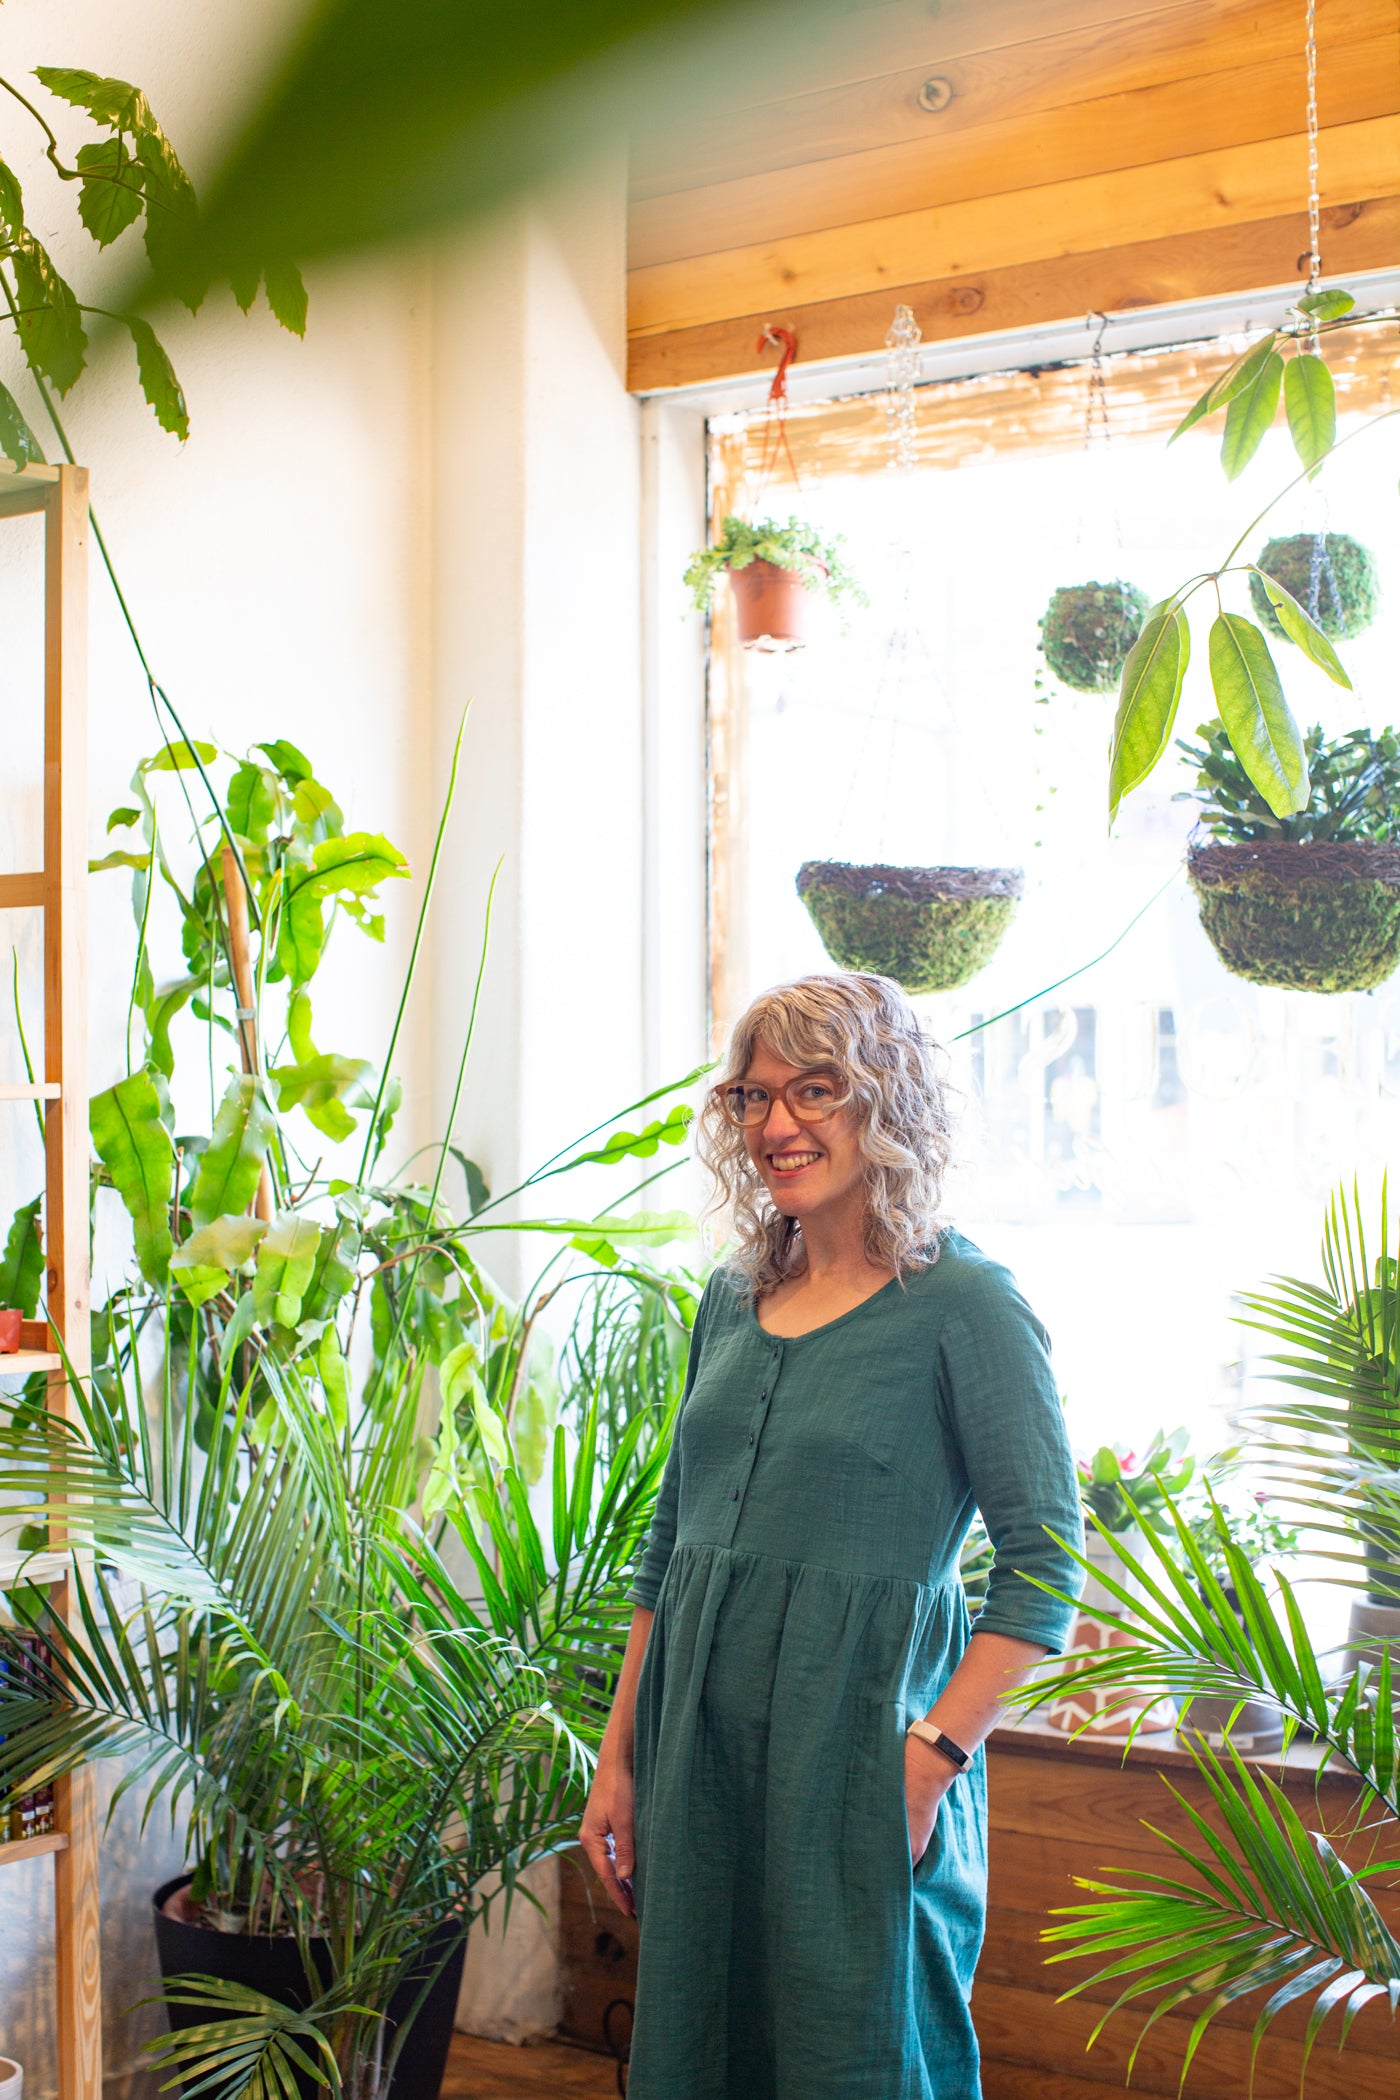 Jaime wearing a Japanese Cotton Slub Double Gauze dress in the Spruce color.  Jaime is in a plant shop surrounded by green plants, in front of a large window.  Photograph is knees up with Jaime standing sideways towards the camera, with her left shoulder towards the camera, with her left hand in her pocket.